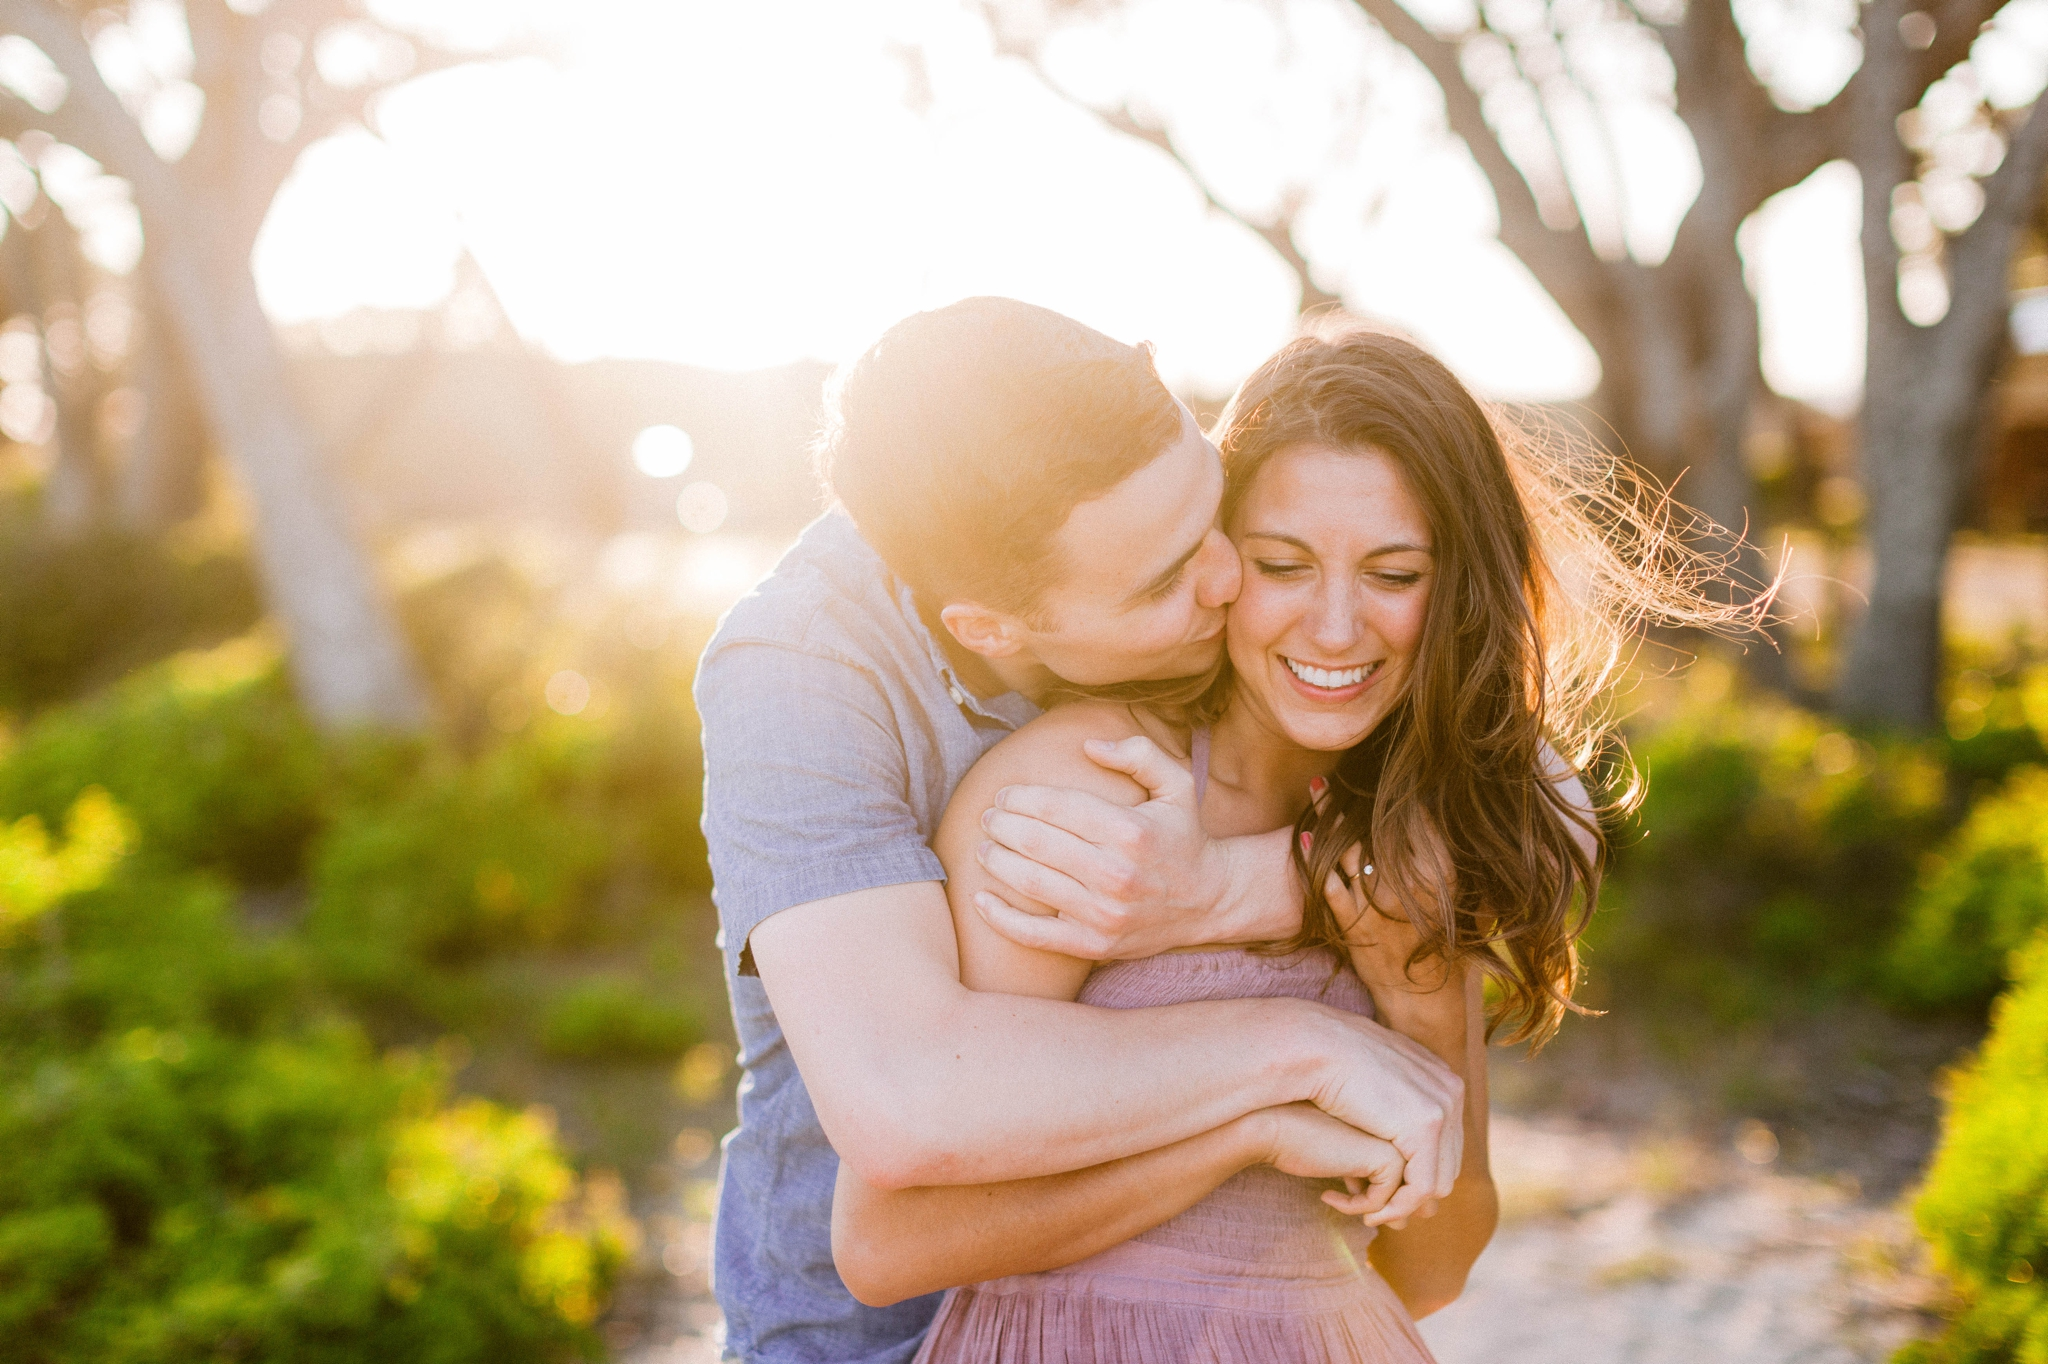 Guy kissing a girl in front of live oak trees with the sunset behind them - Woman is in a flowy pastel maxi dress - outdoor golden light session - engagement photographer in honolulu, oahu, hawaii - johanna dye photography